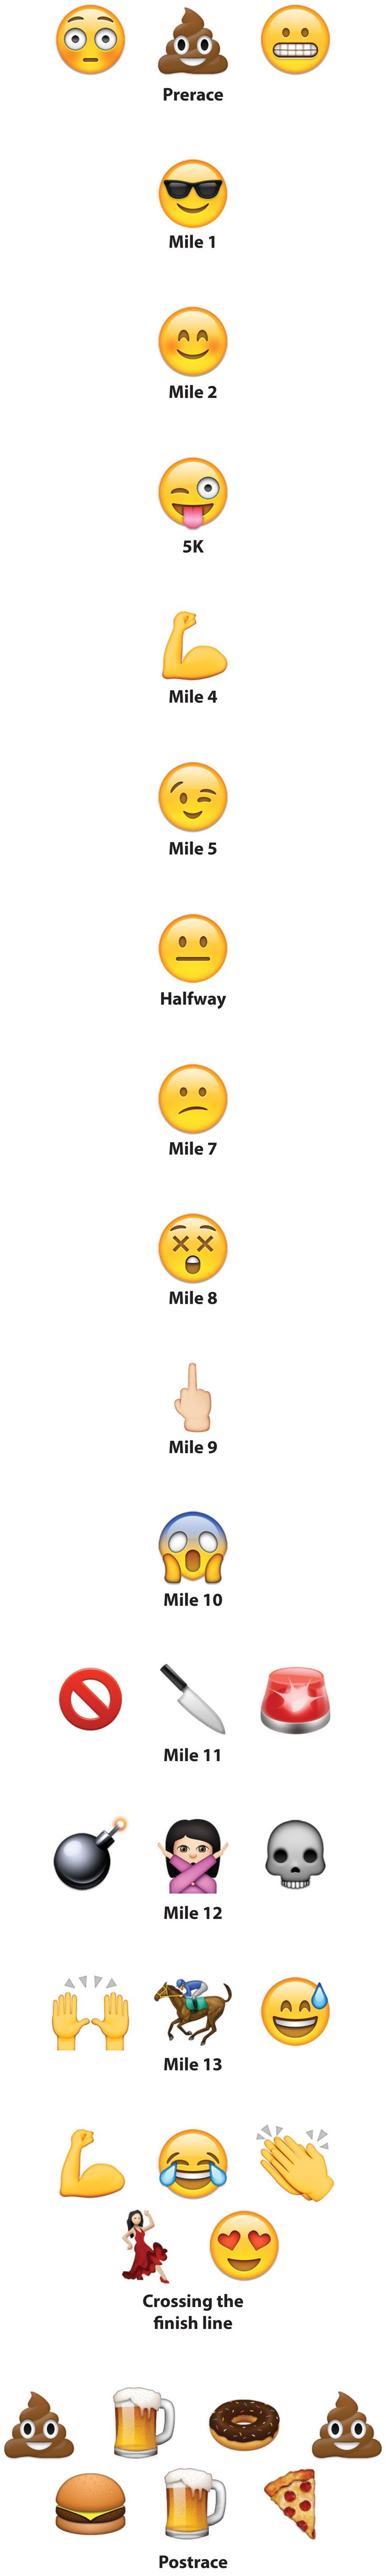 Running a Half Marathon as Told by Emojis http://www.runnersworld.com/half-marathon/running-a-half-marathon-as-told-by-emojis